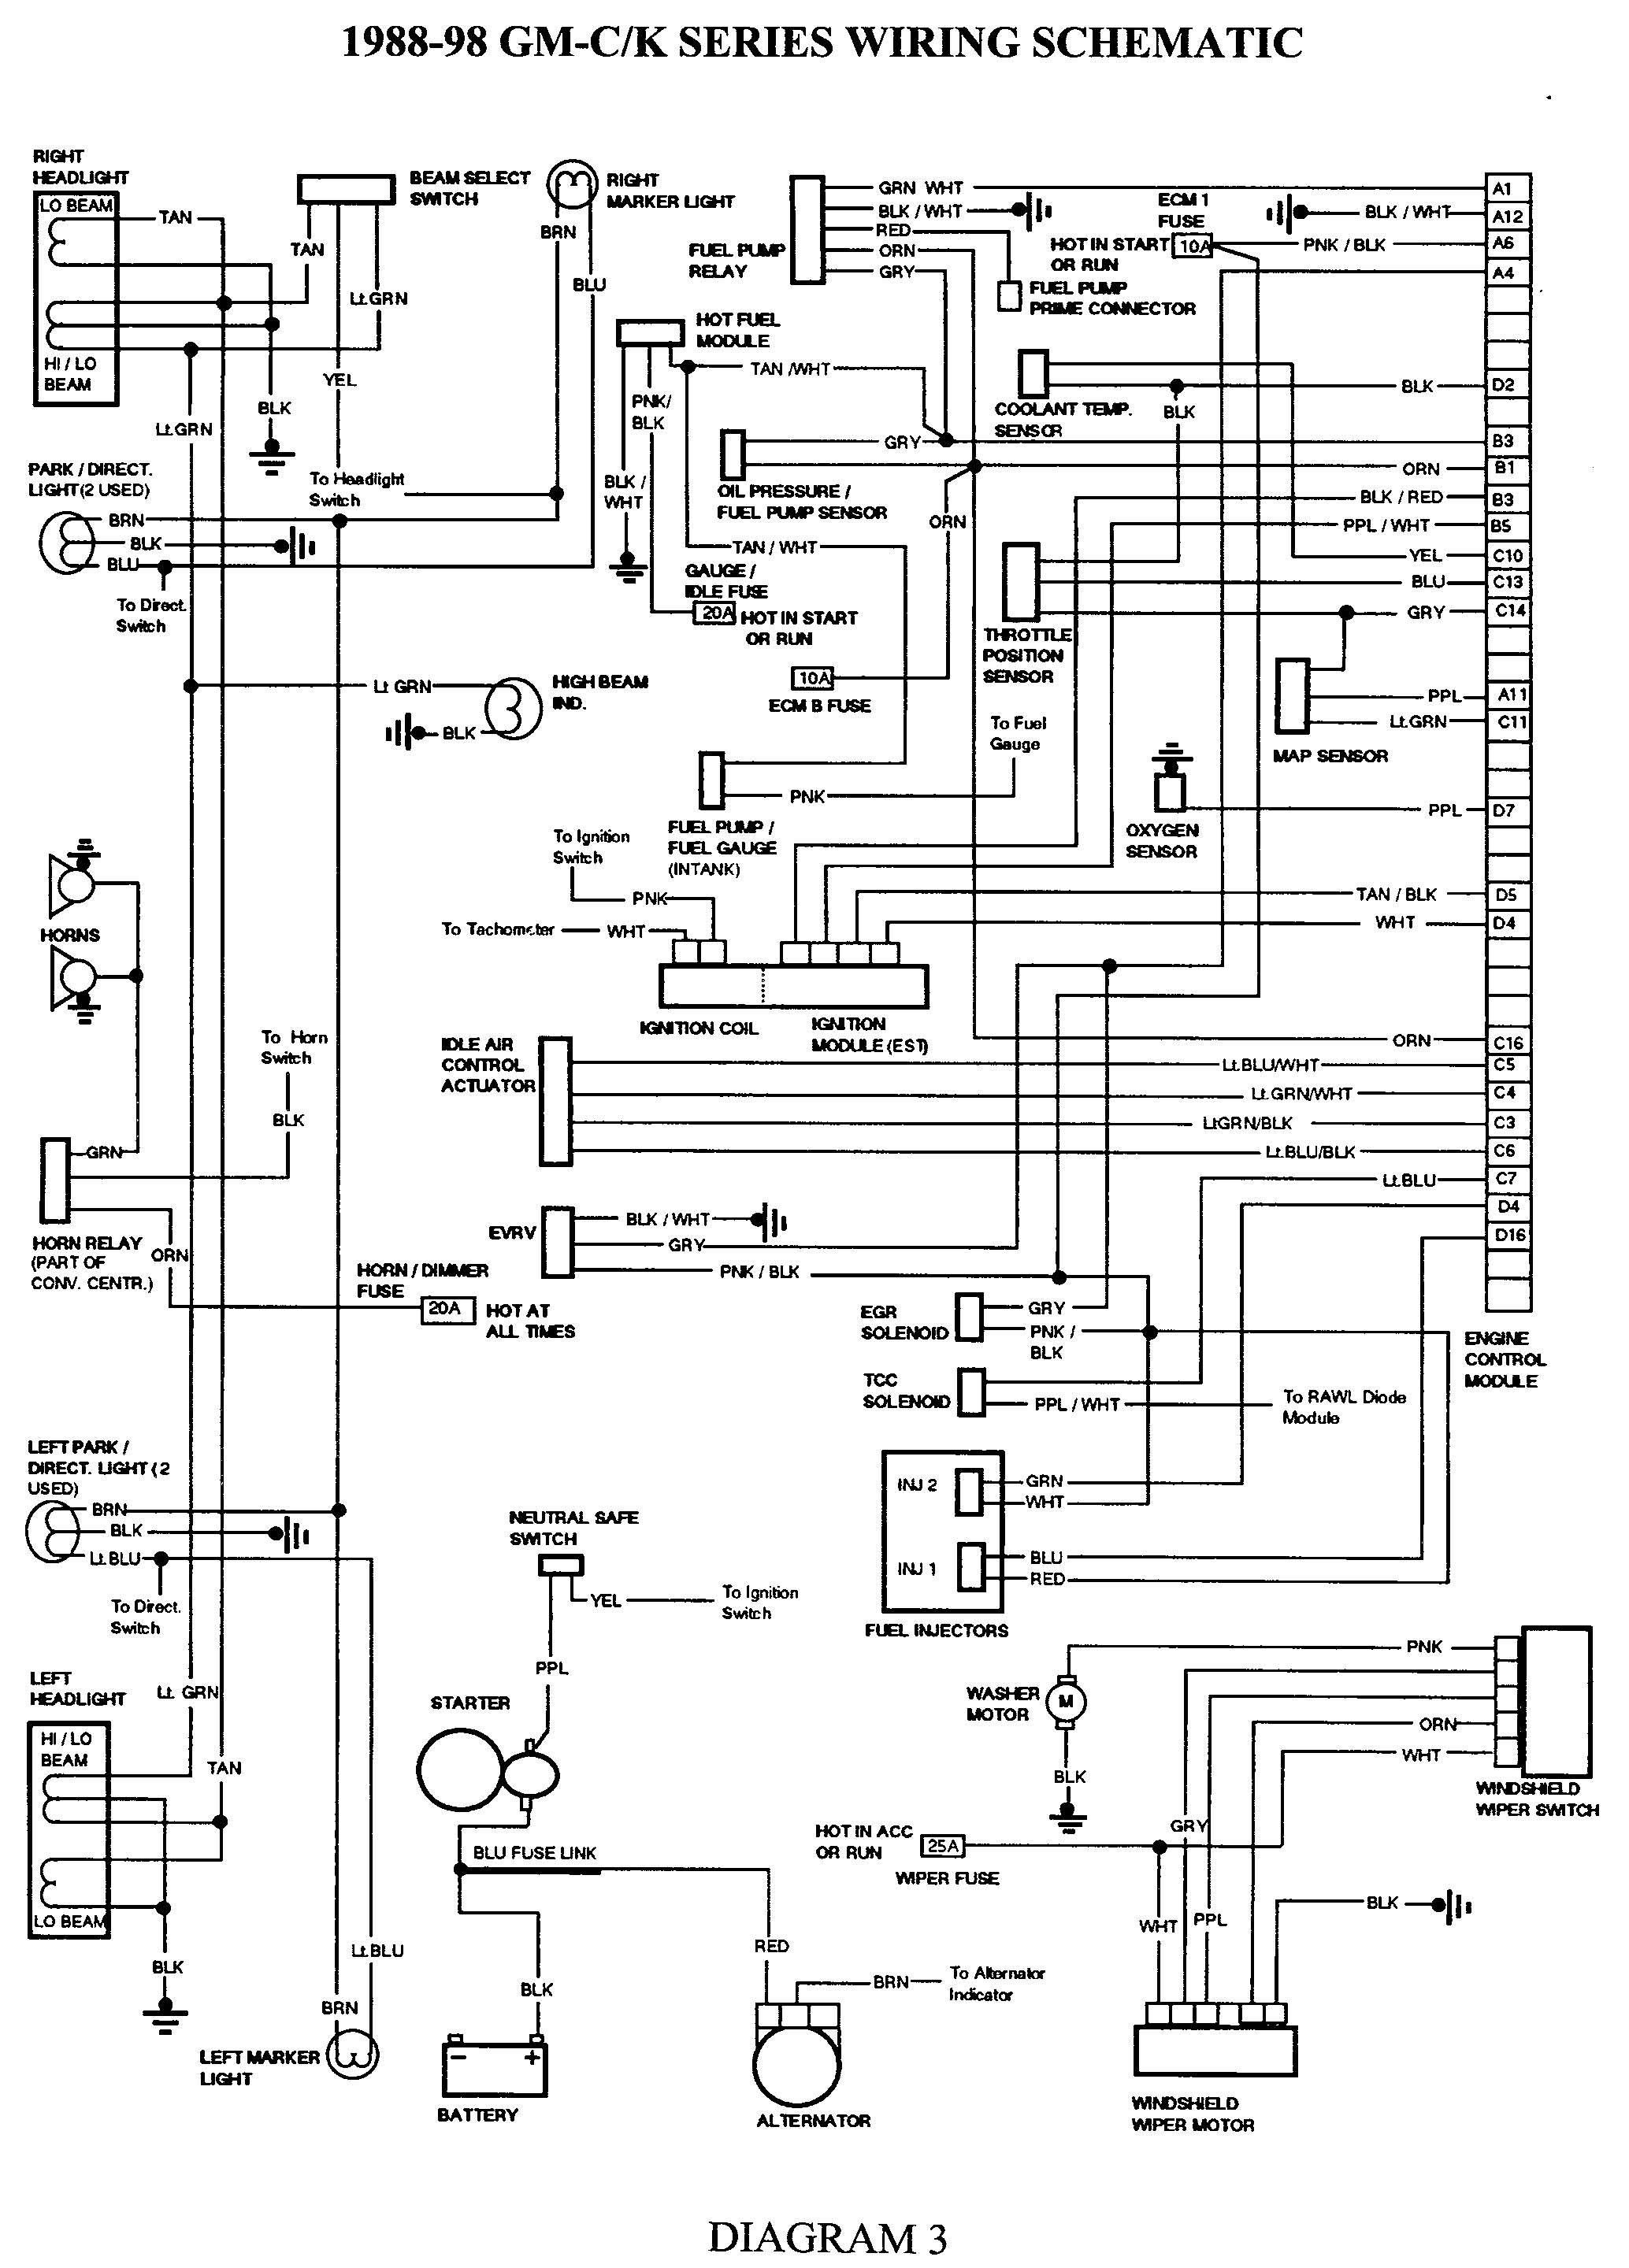 medium resolution of unique wiring schematic legend diagram wiringdiagram diagramming diagramm visuals visualisation